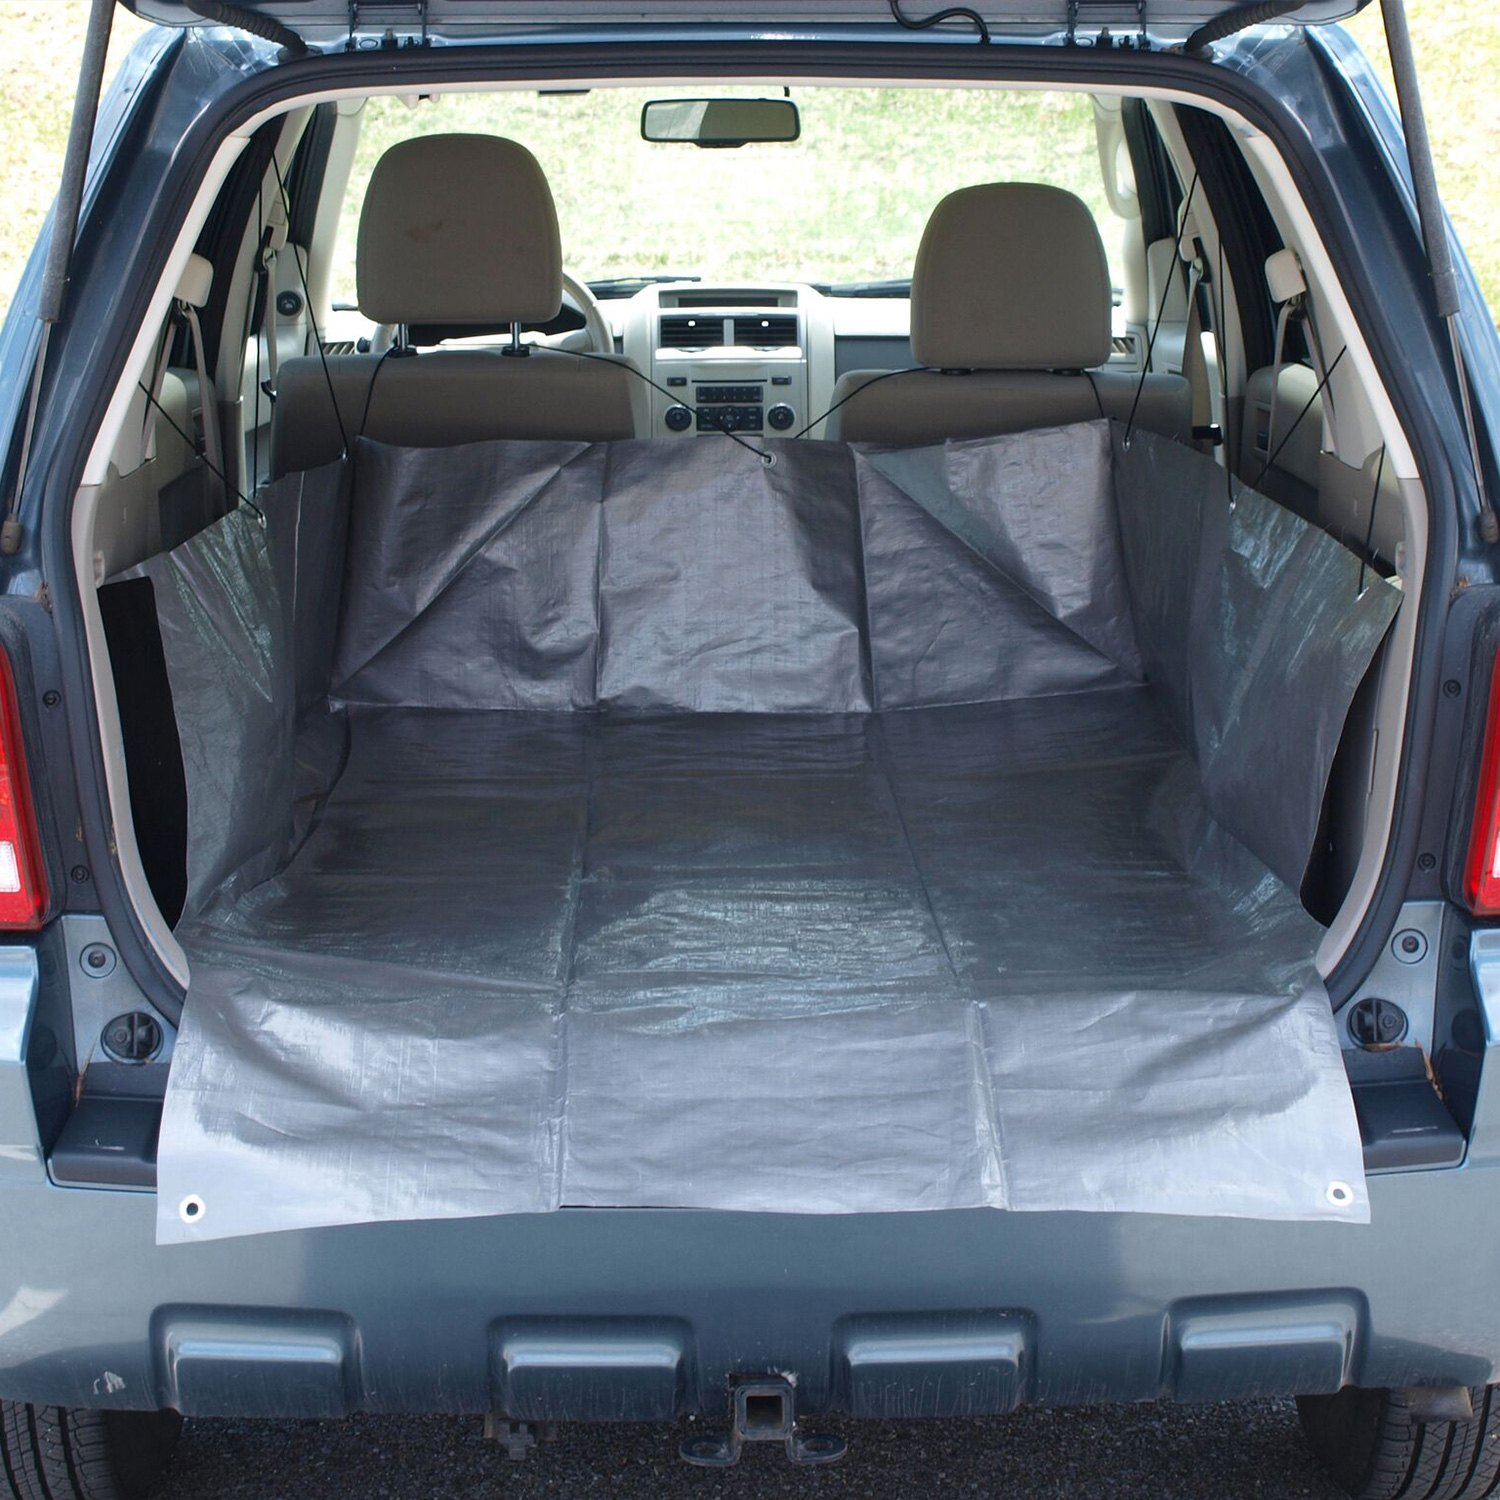 For Chevy Suburban 2014-2019 CarGo Apron M56 Removable